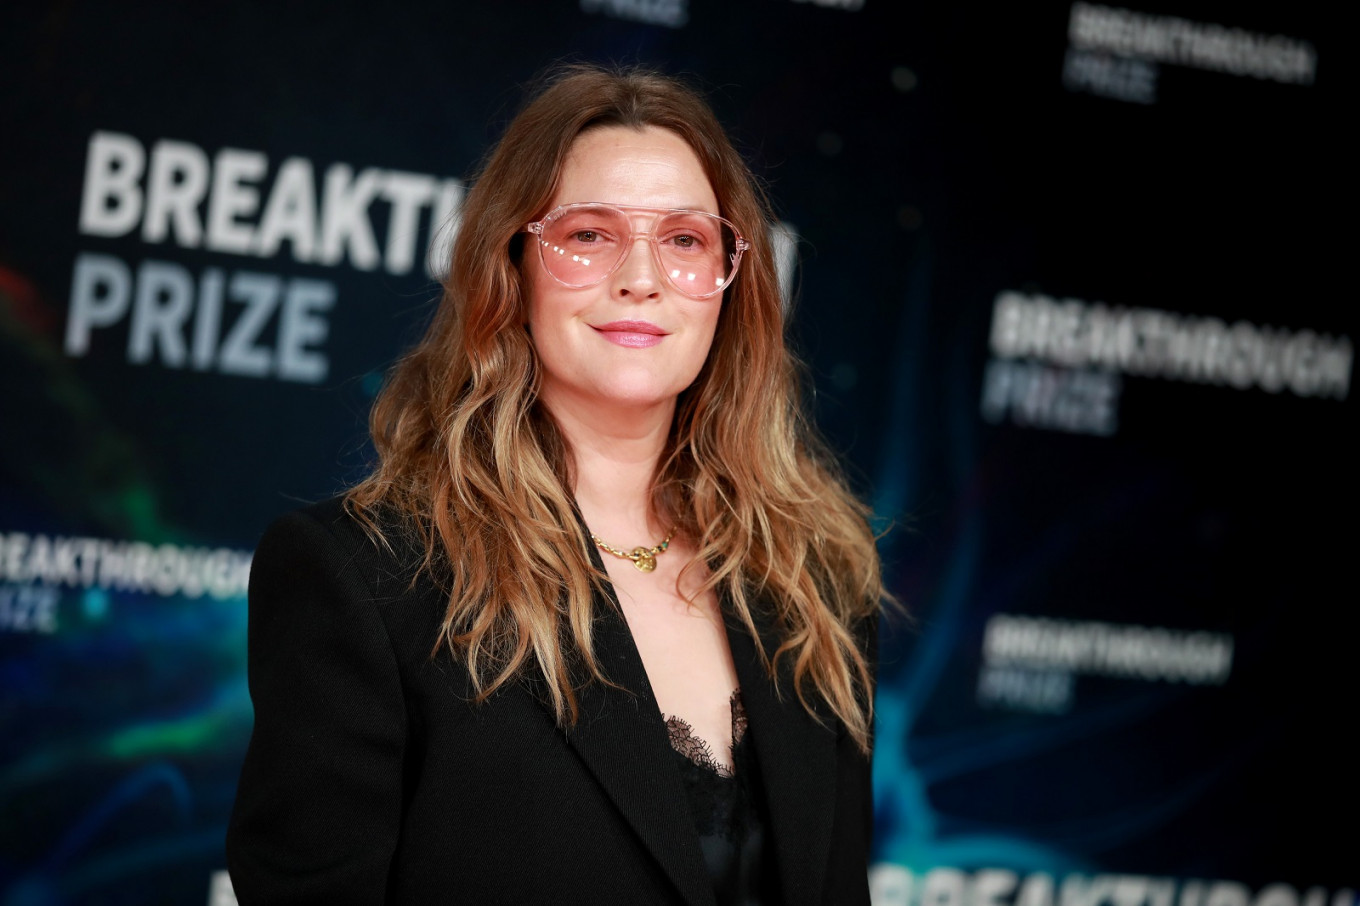 Drew Barrymore Addresses Nose Hairs Adult Acne In New Instagram Videos Entertainment The Jakarta Post